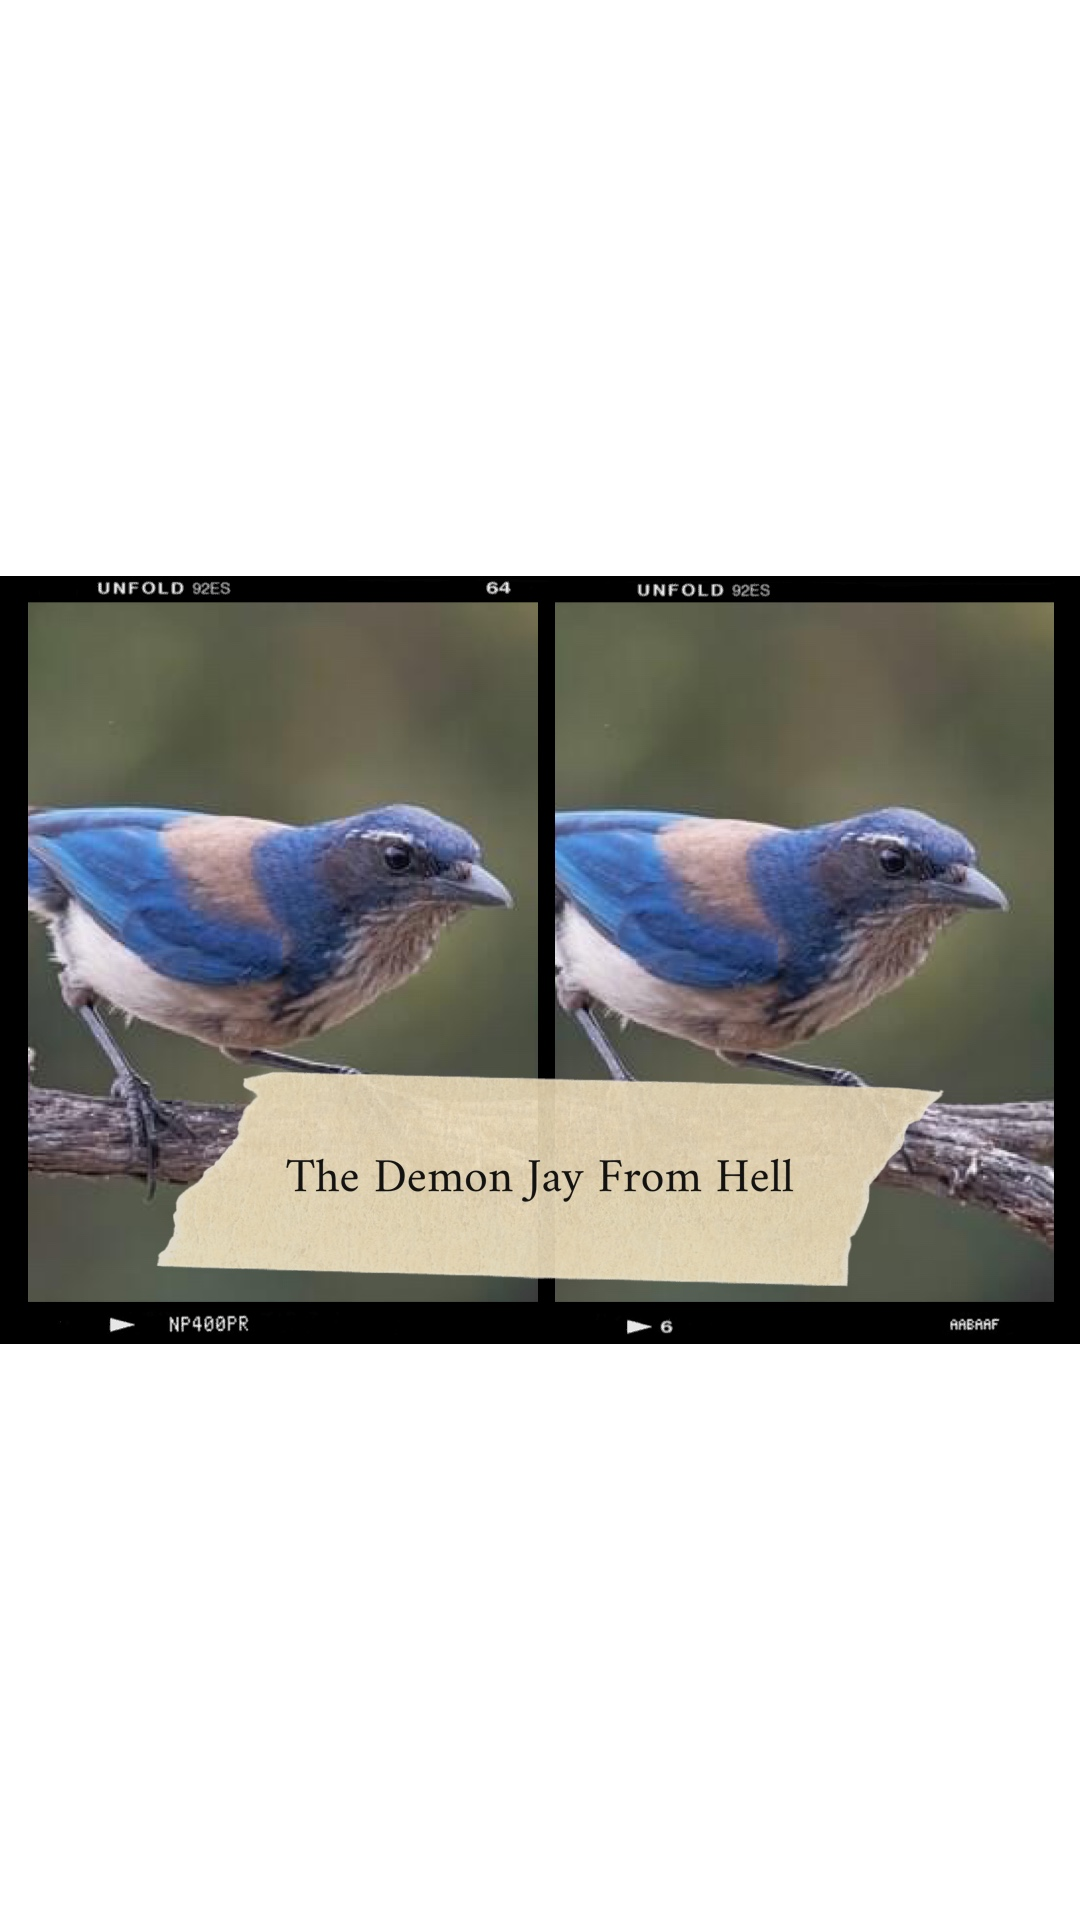 The Demon Jay From The Pits of Hell